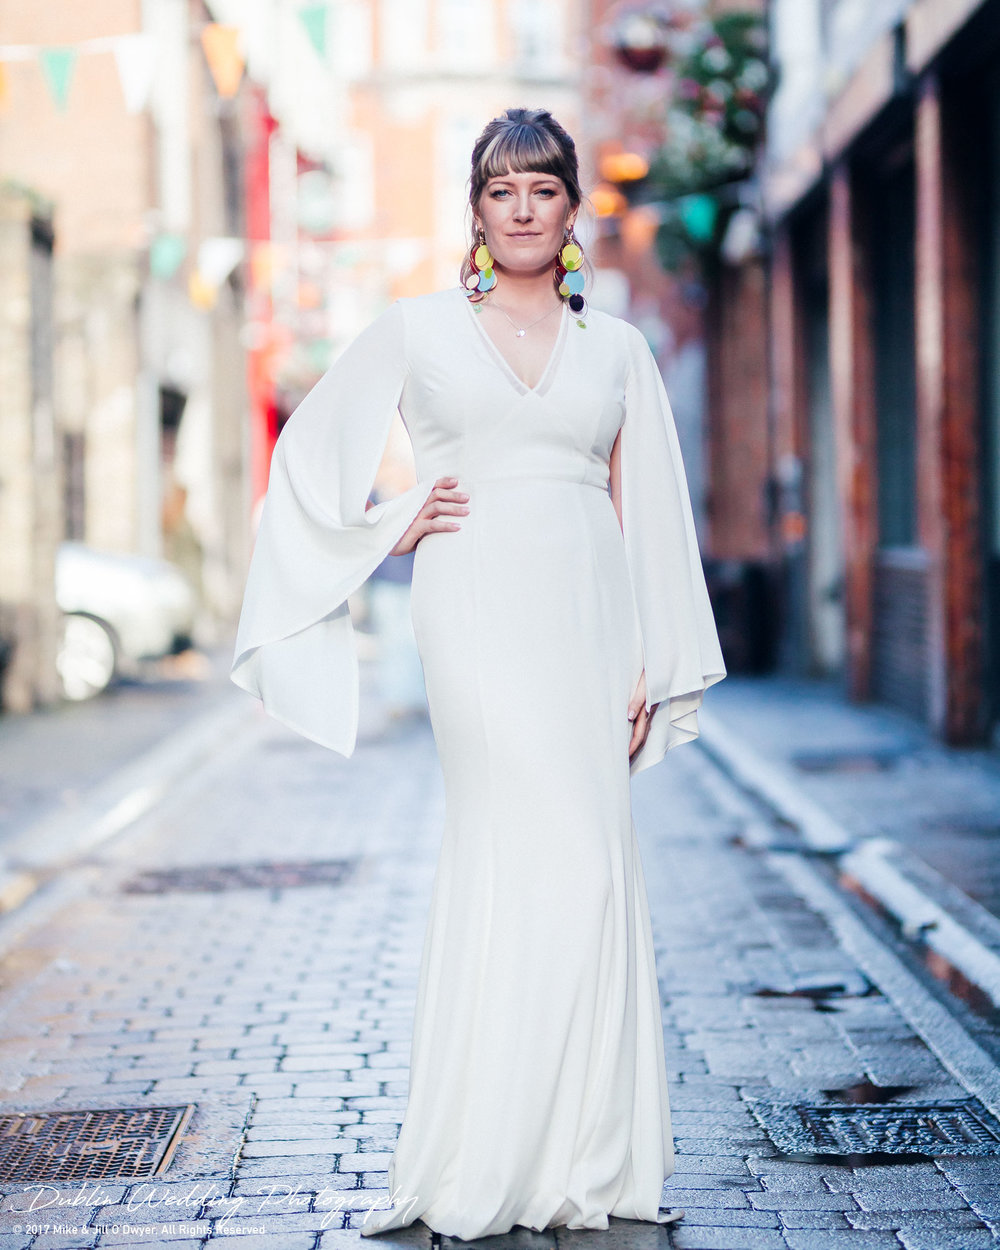 Dublin Wedding Photographer City Streets 081